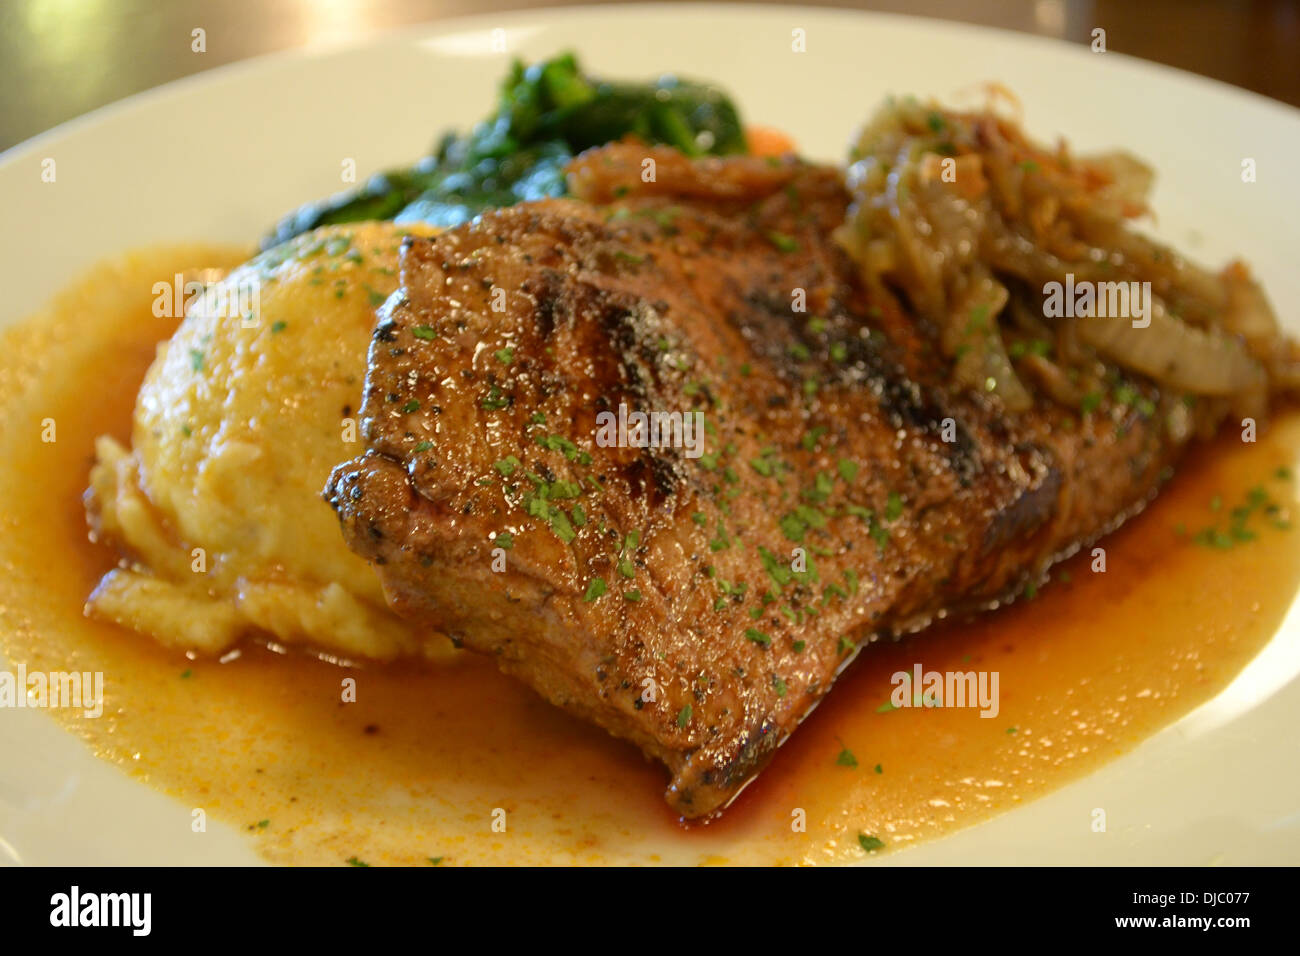 Sirloin steak with mash potato - Stock Image